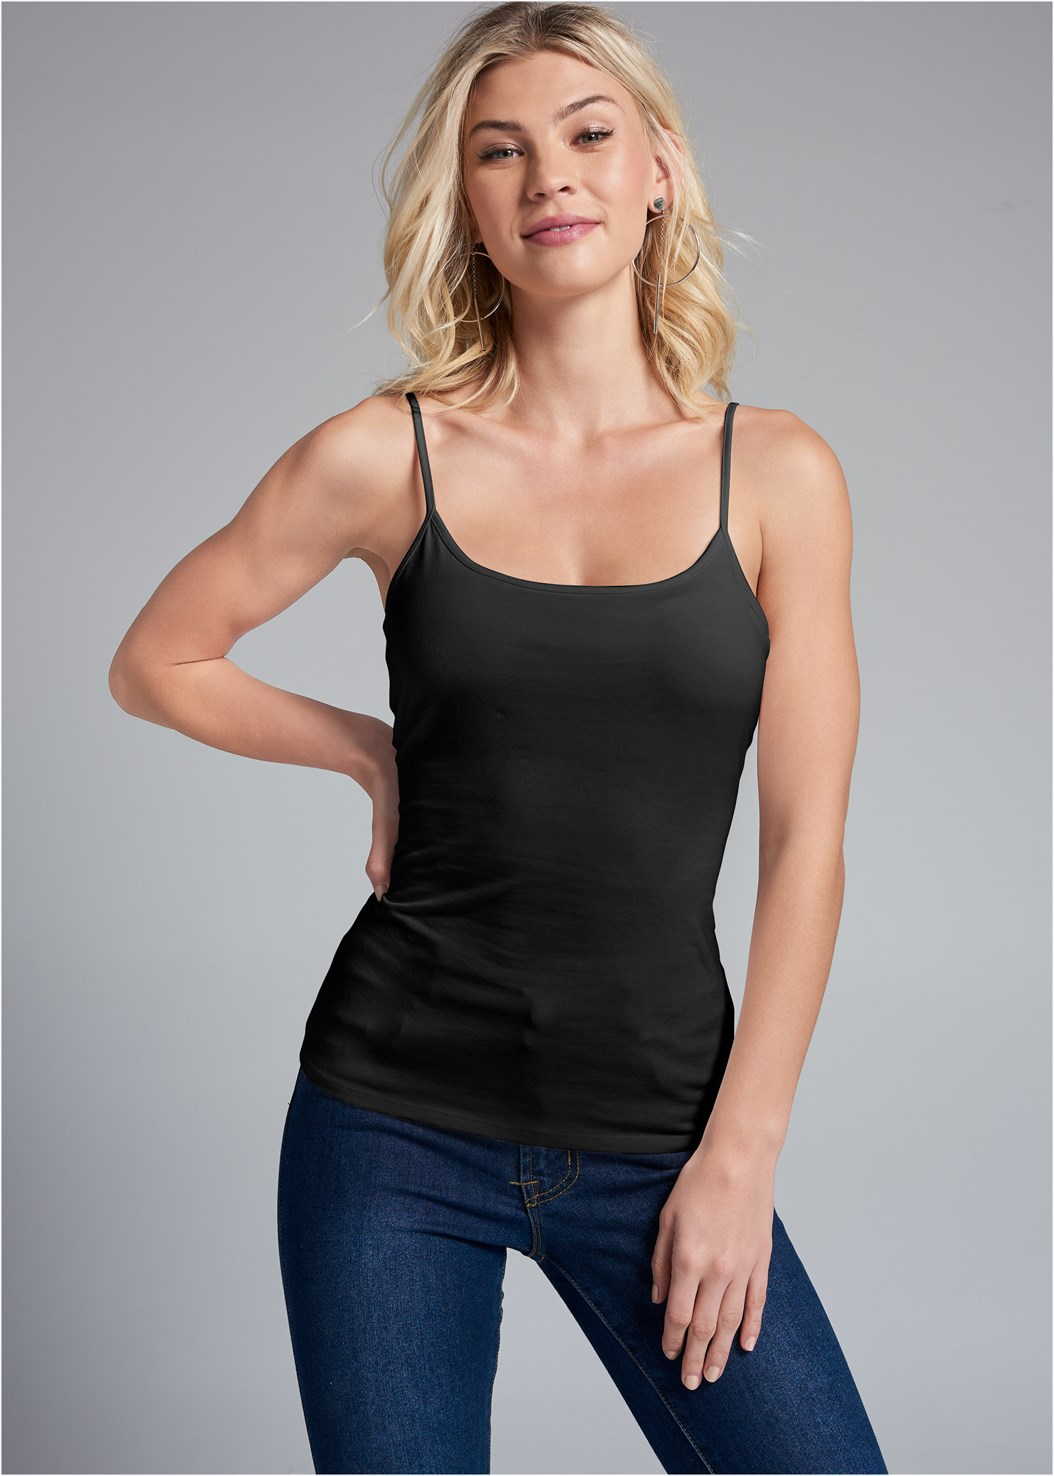 Basic Cami Two Pack,Mid Rise Color Skinny Jeans,Everyday You Strapless Bra,High Heel Strappy Sandals,Hoop Detail Earrings